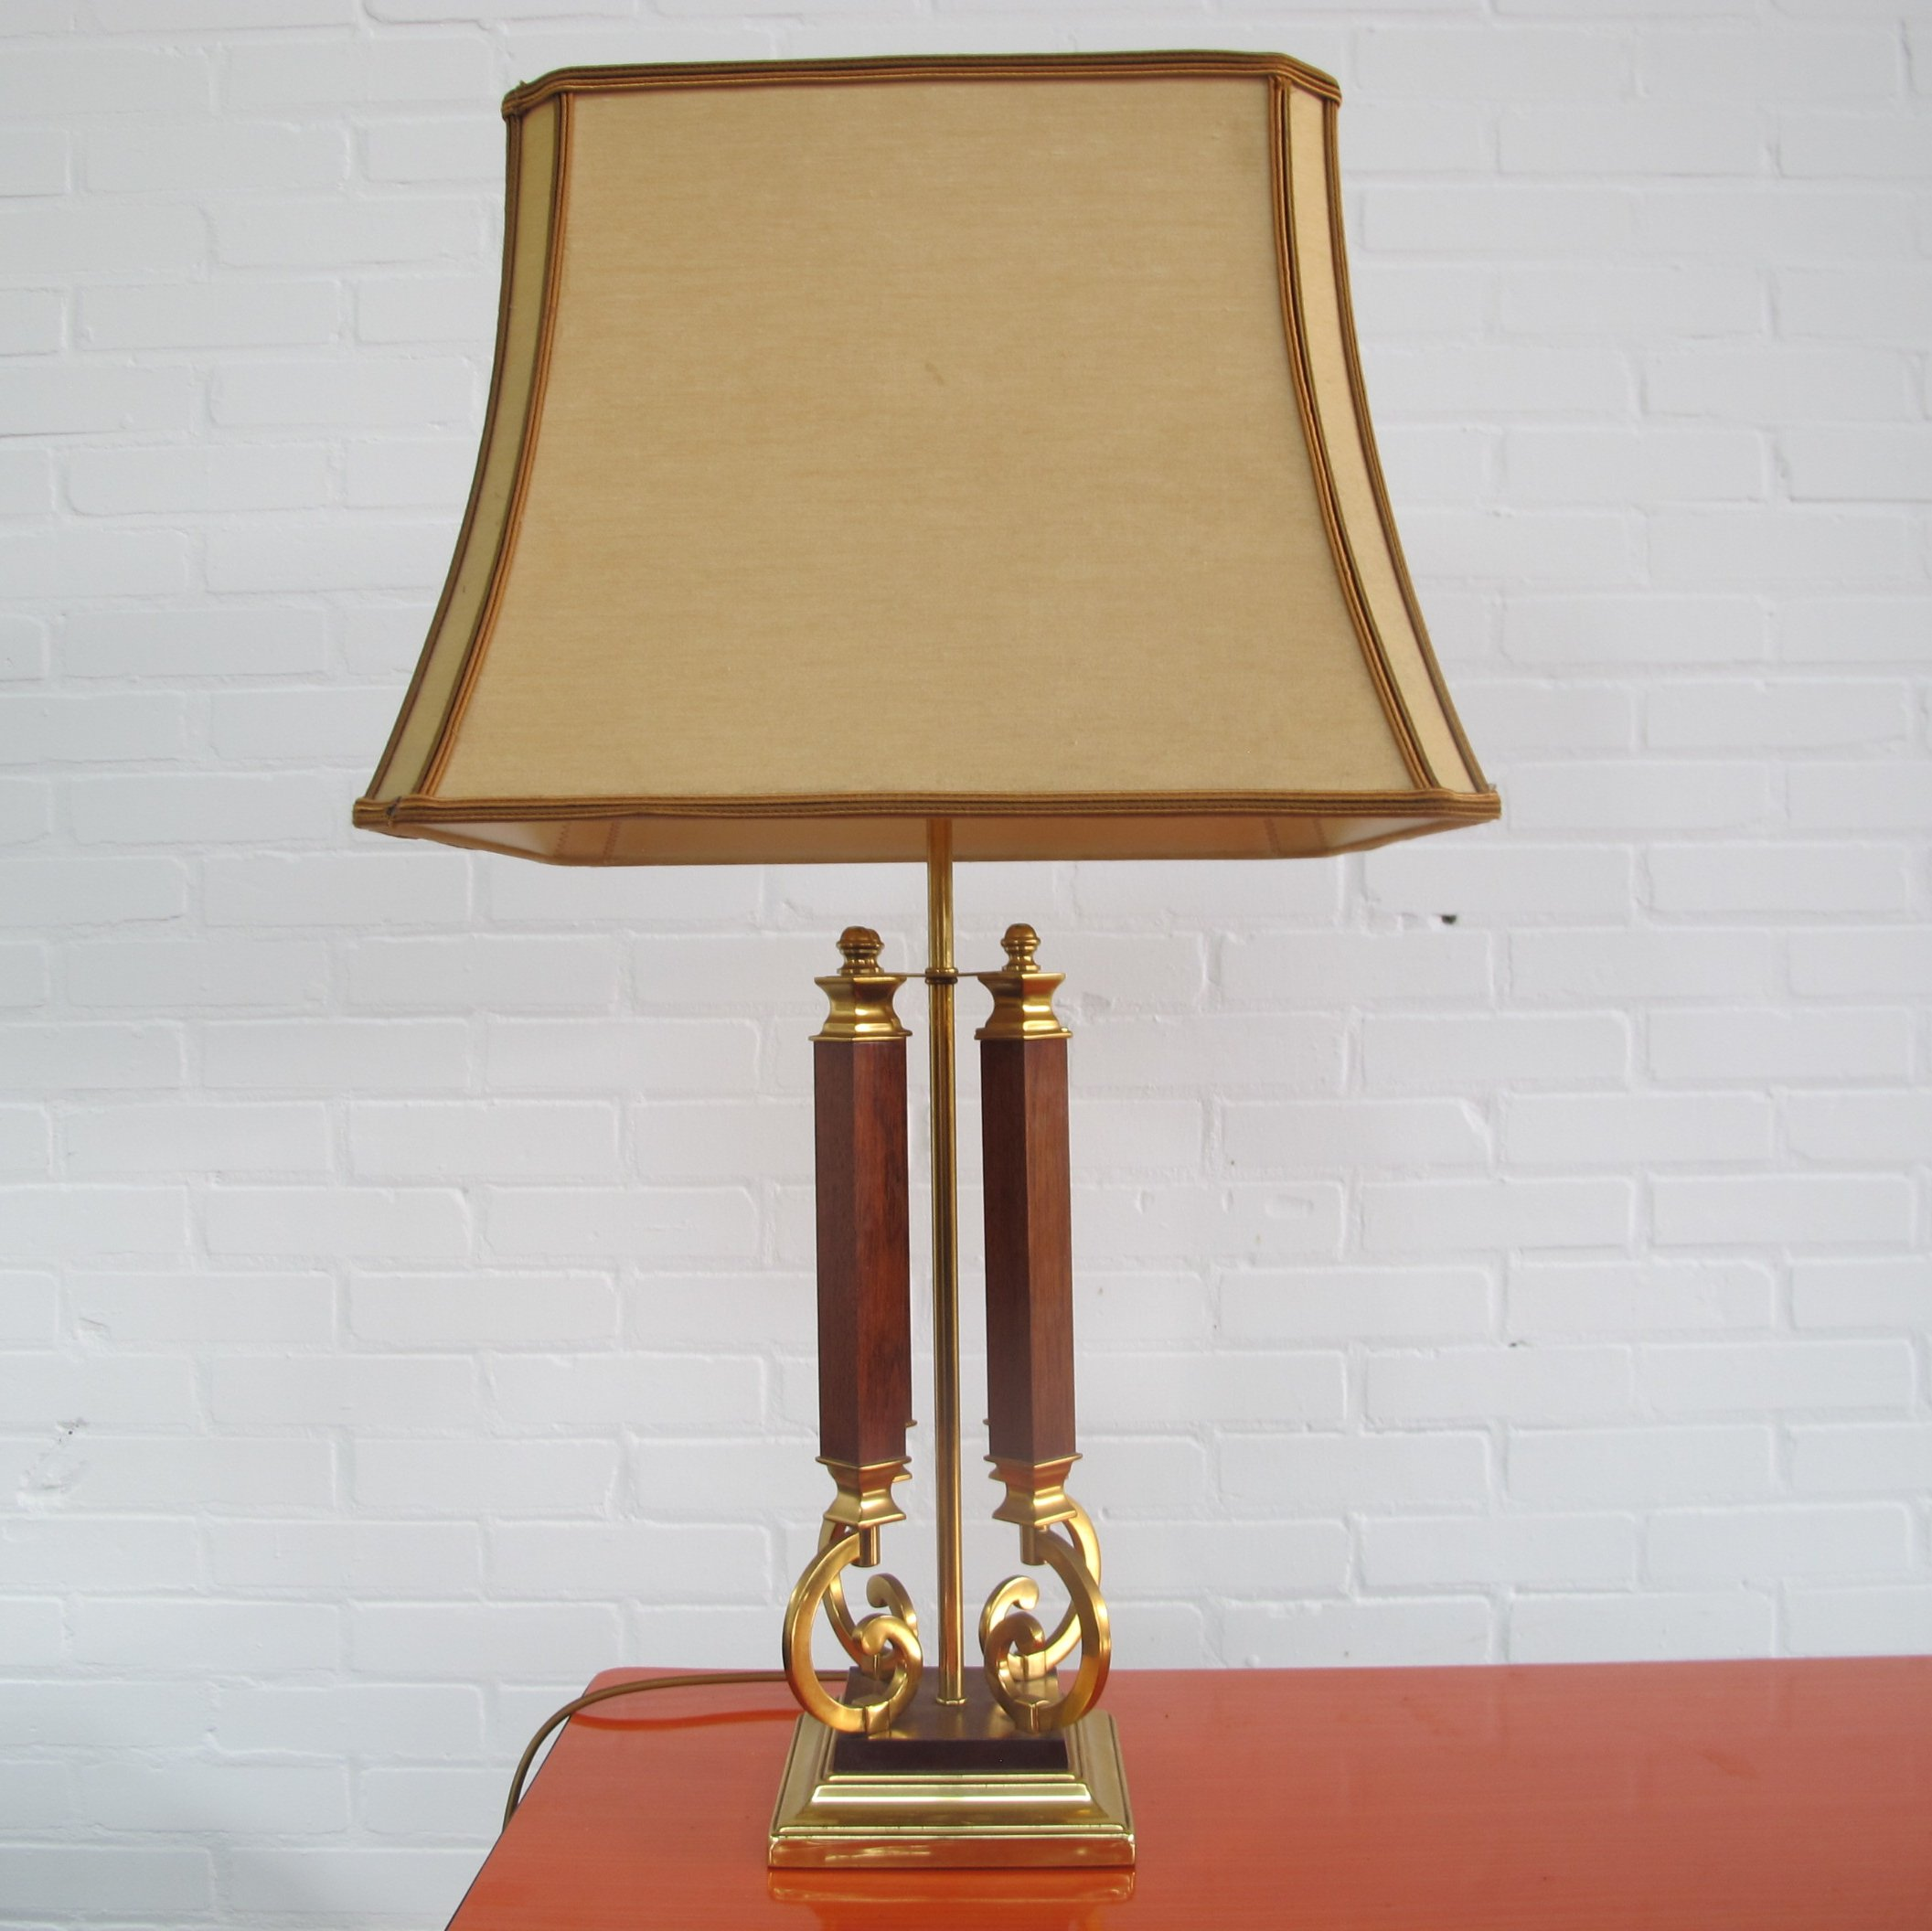 Vintage Brass Wood Table Lamp 1970s 86029